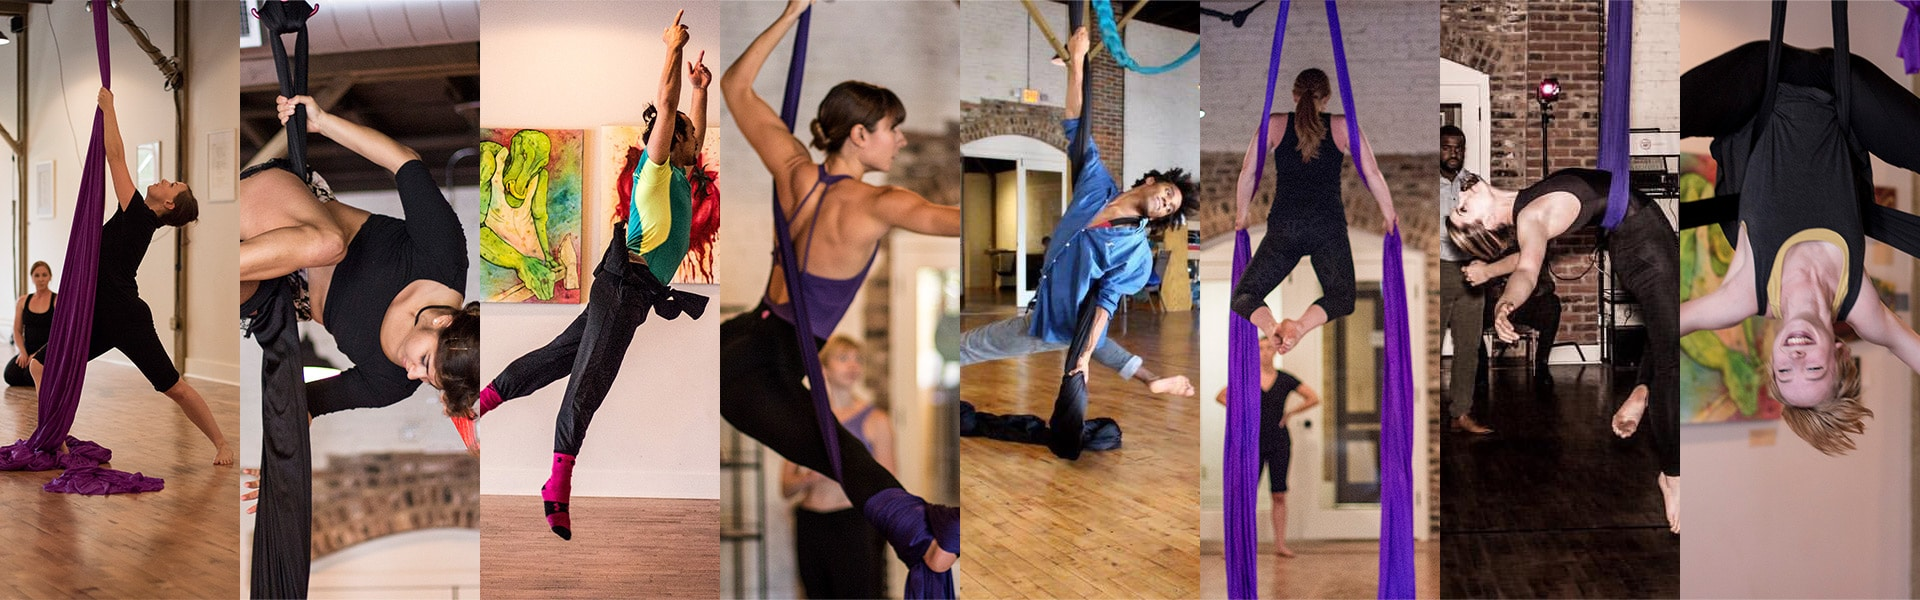 Aerial semester 11 classes